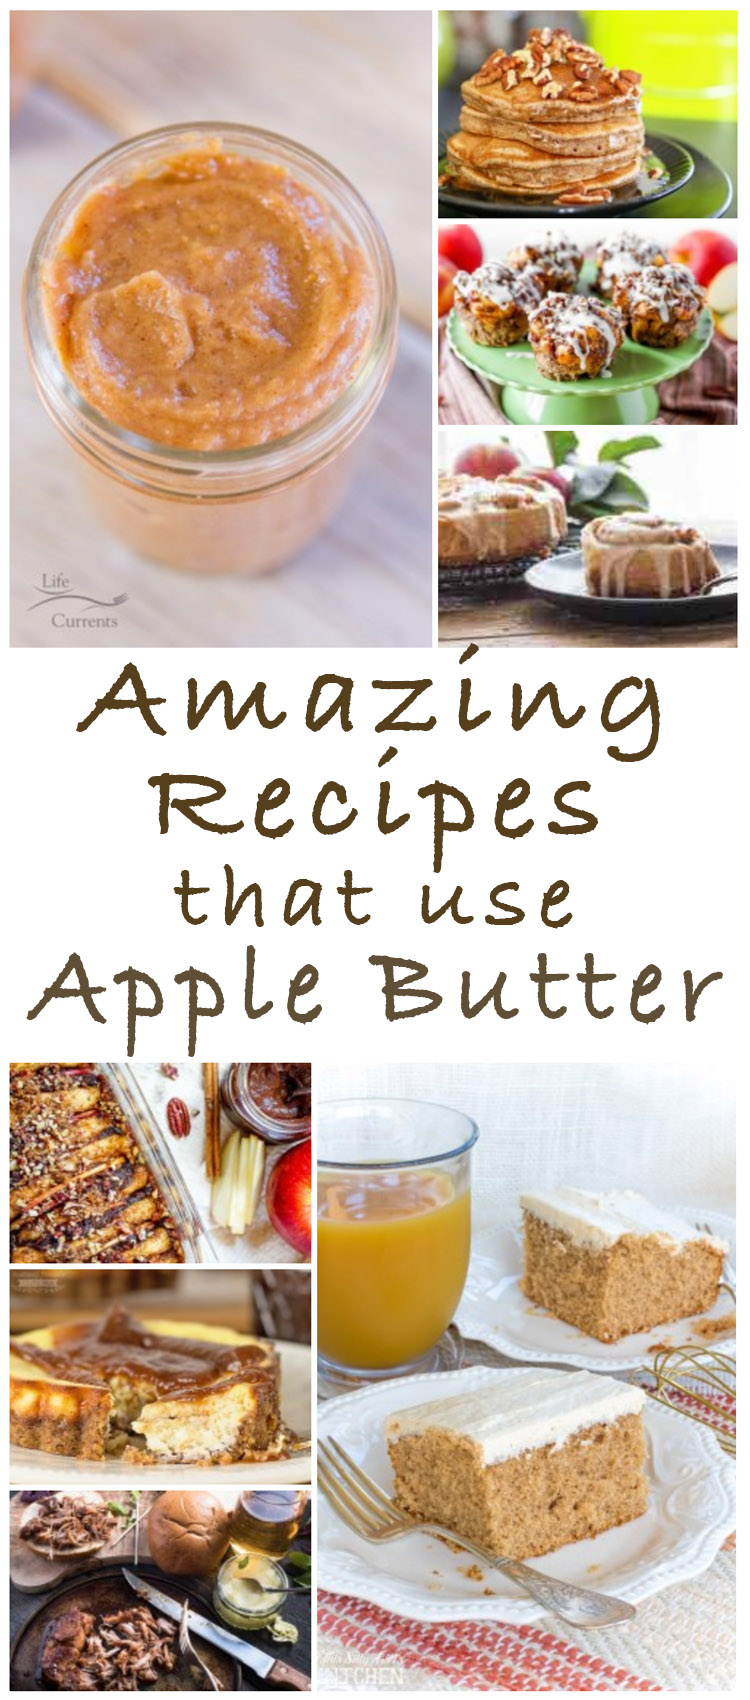 Fabulous Recipes that use Apple Butter - perfect for fall!